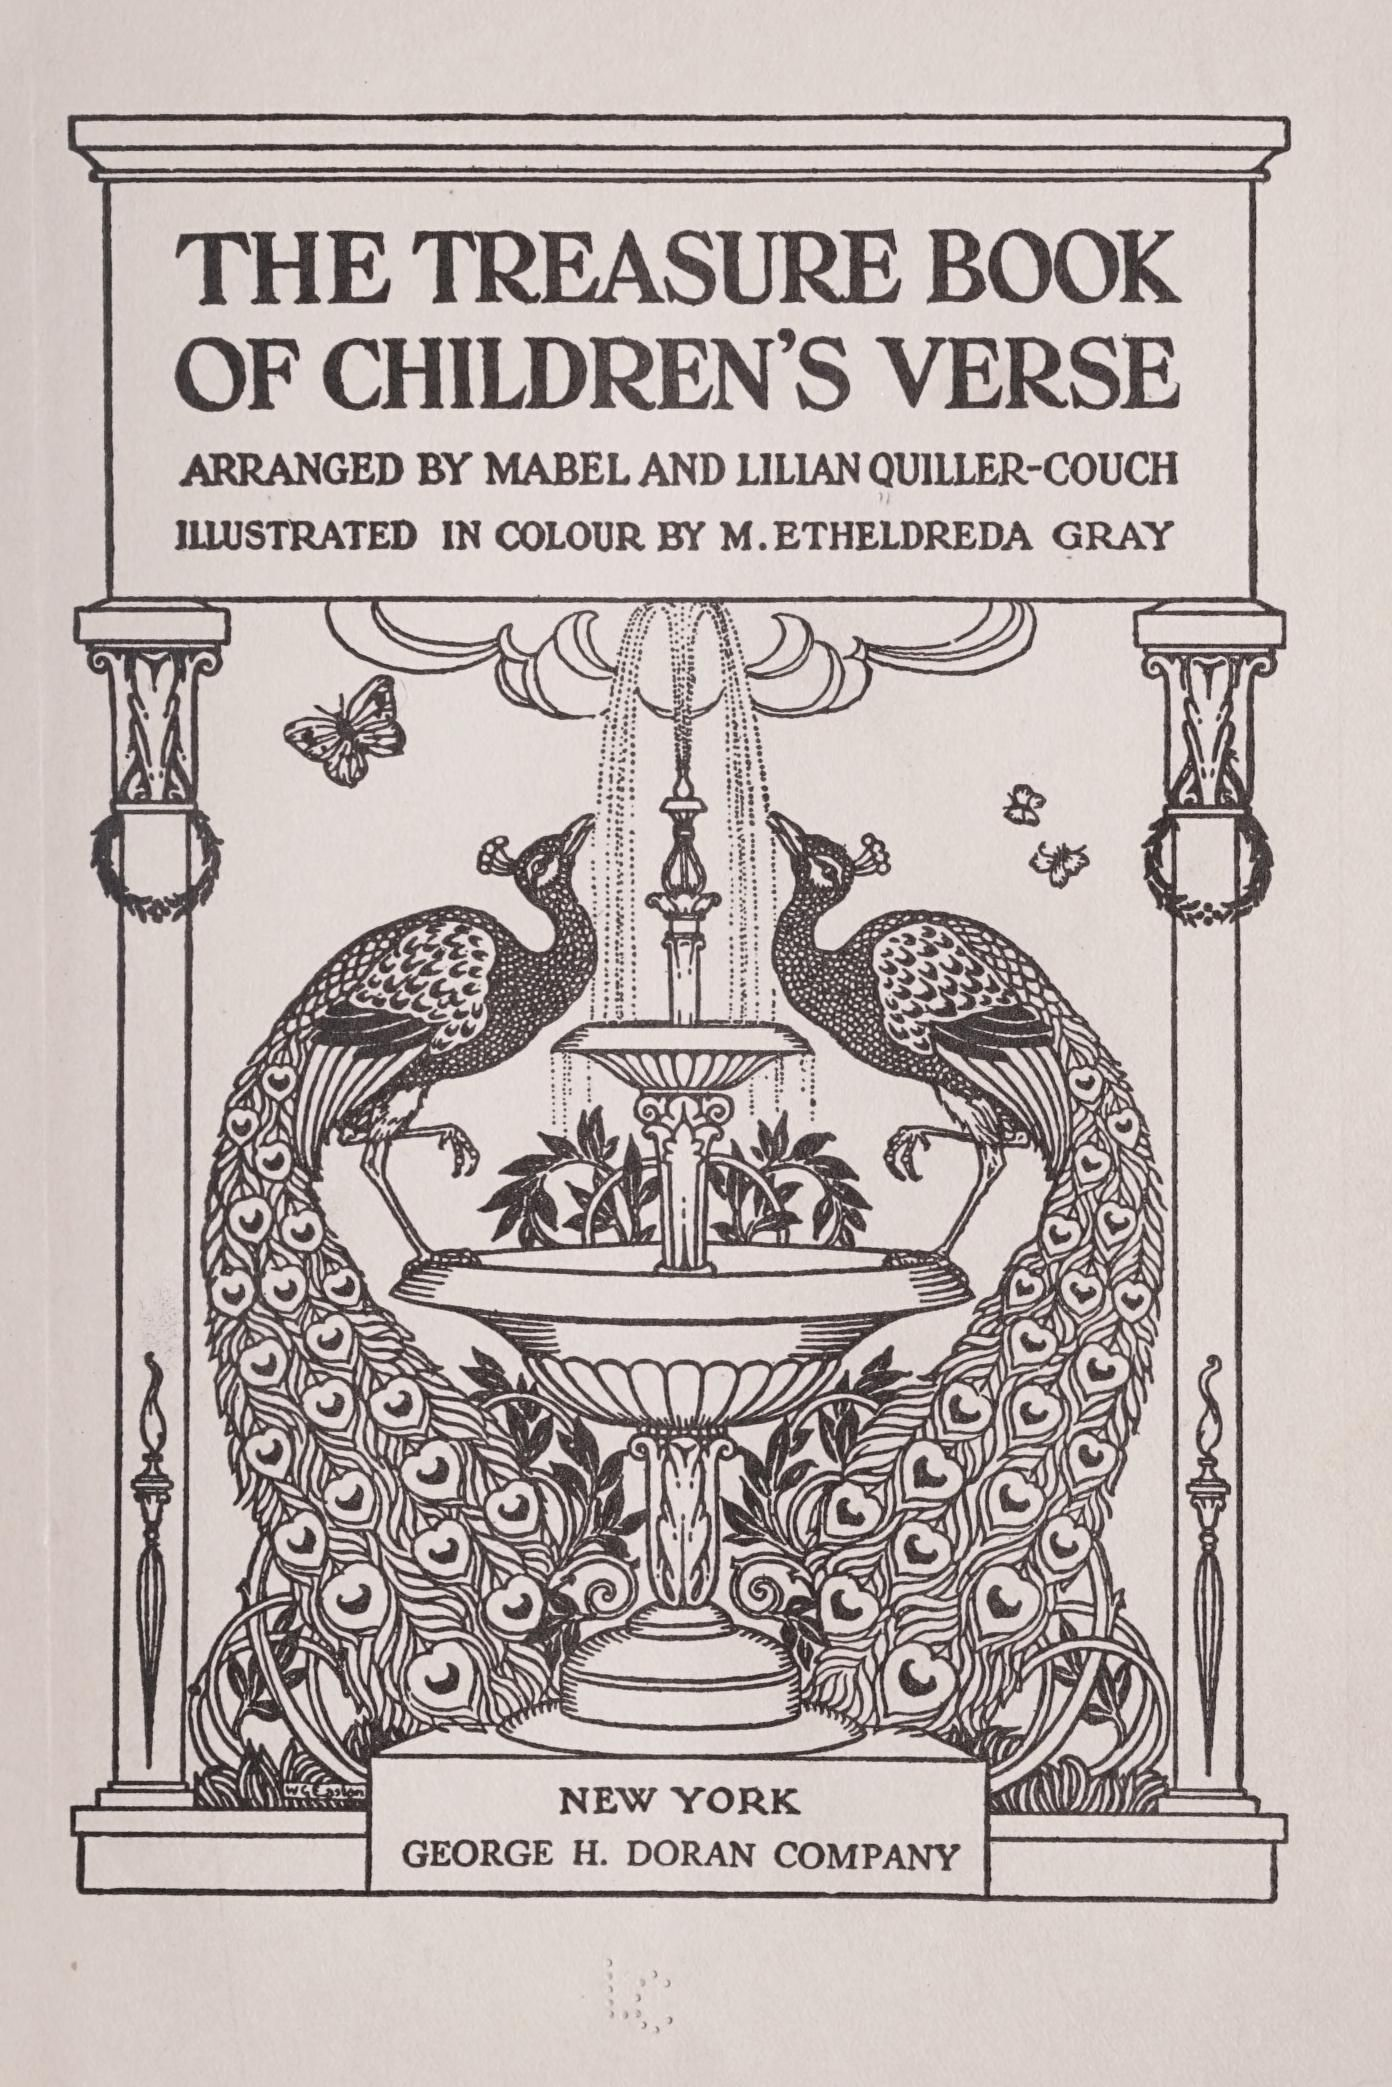 The treasure book of children's verse, QuillerCouch